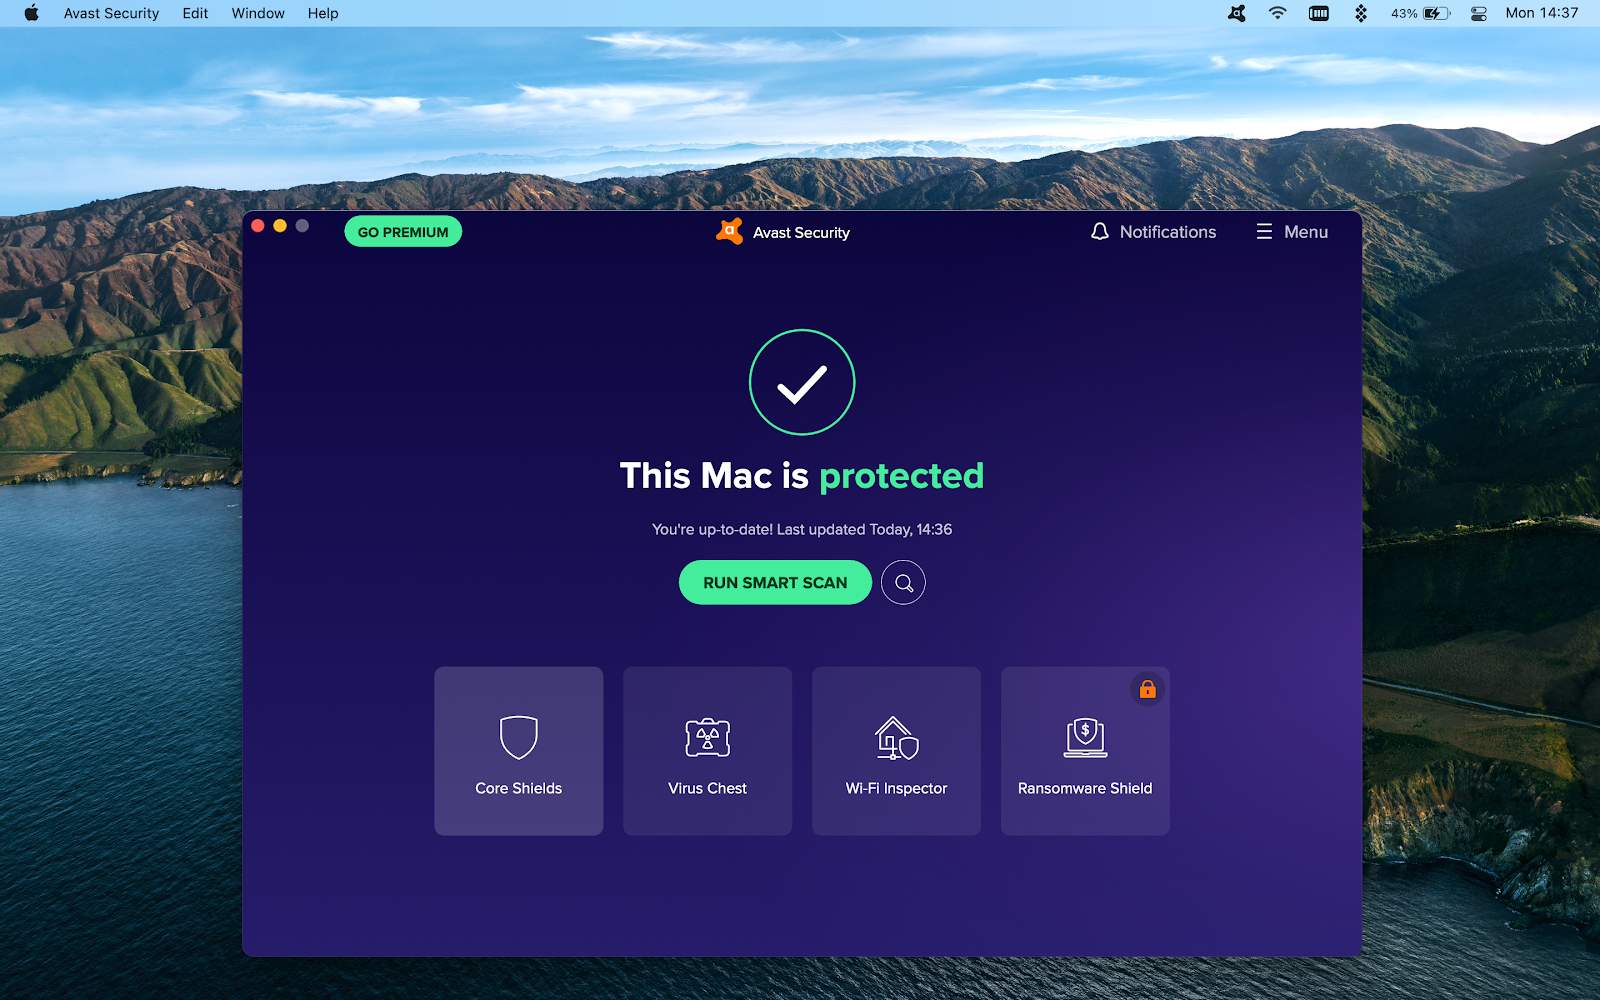 mac-protected-screen-in-avast